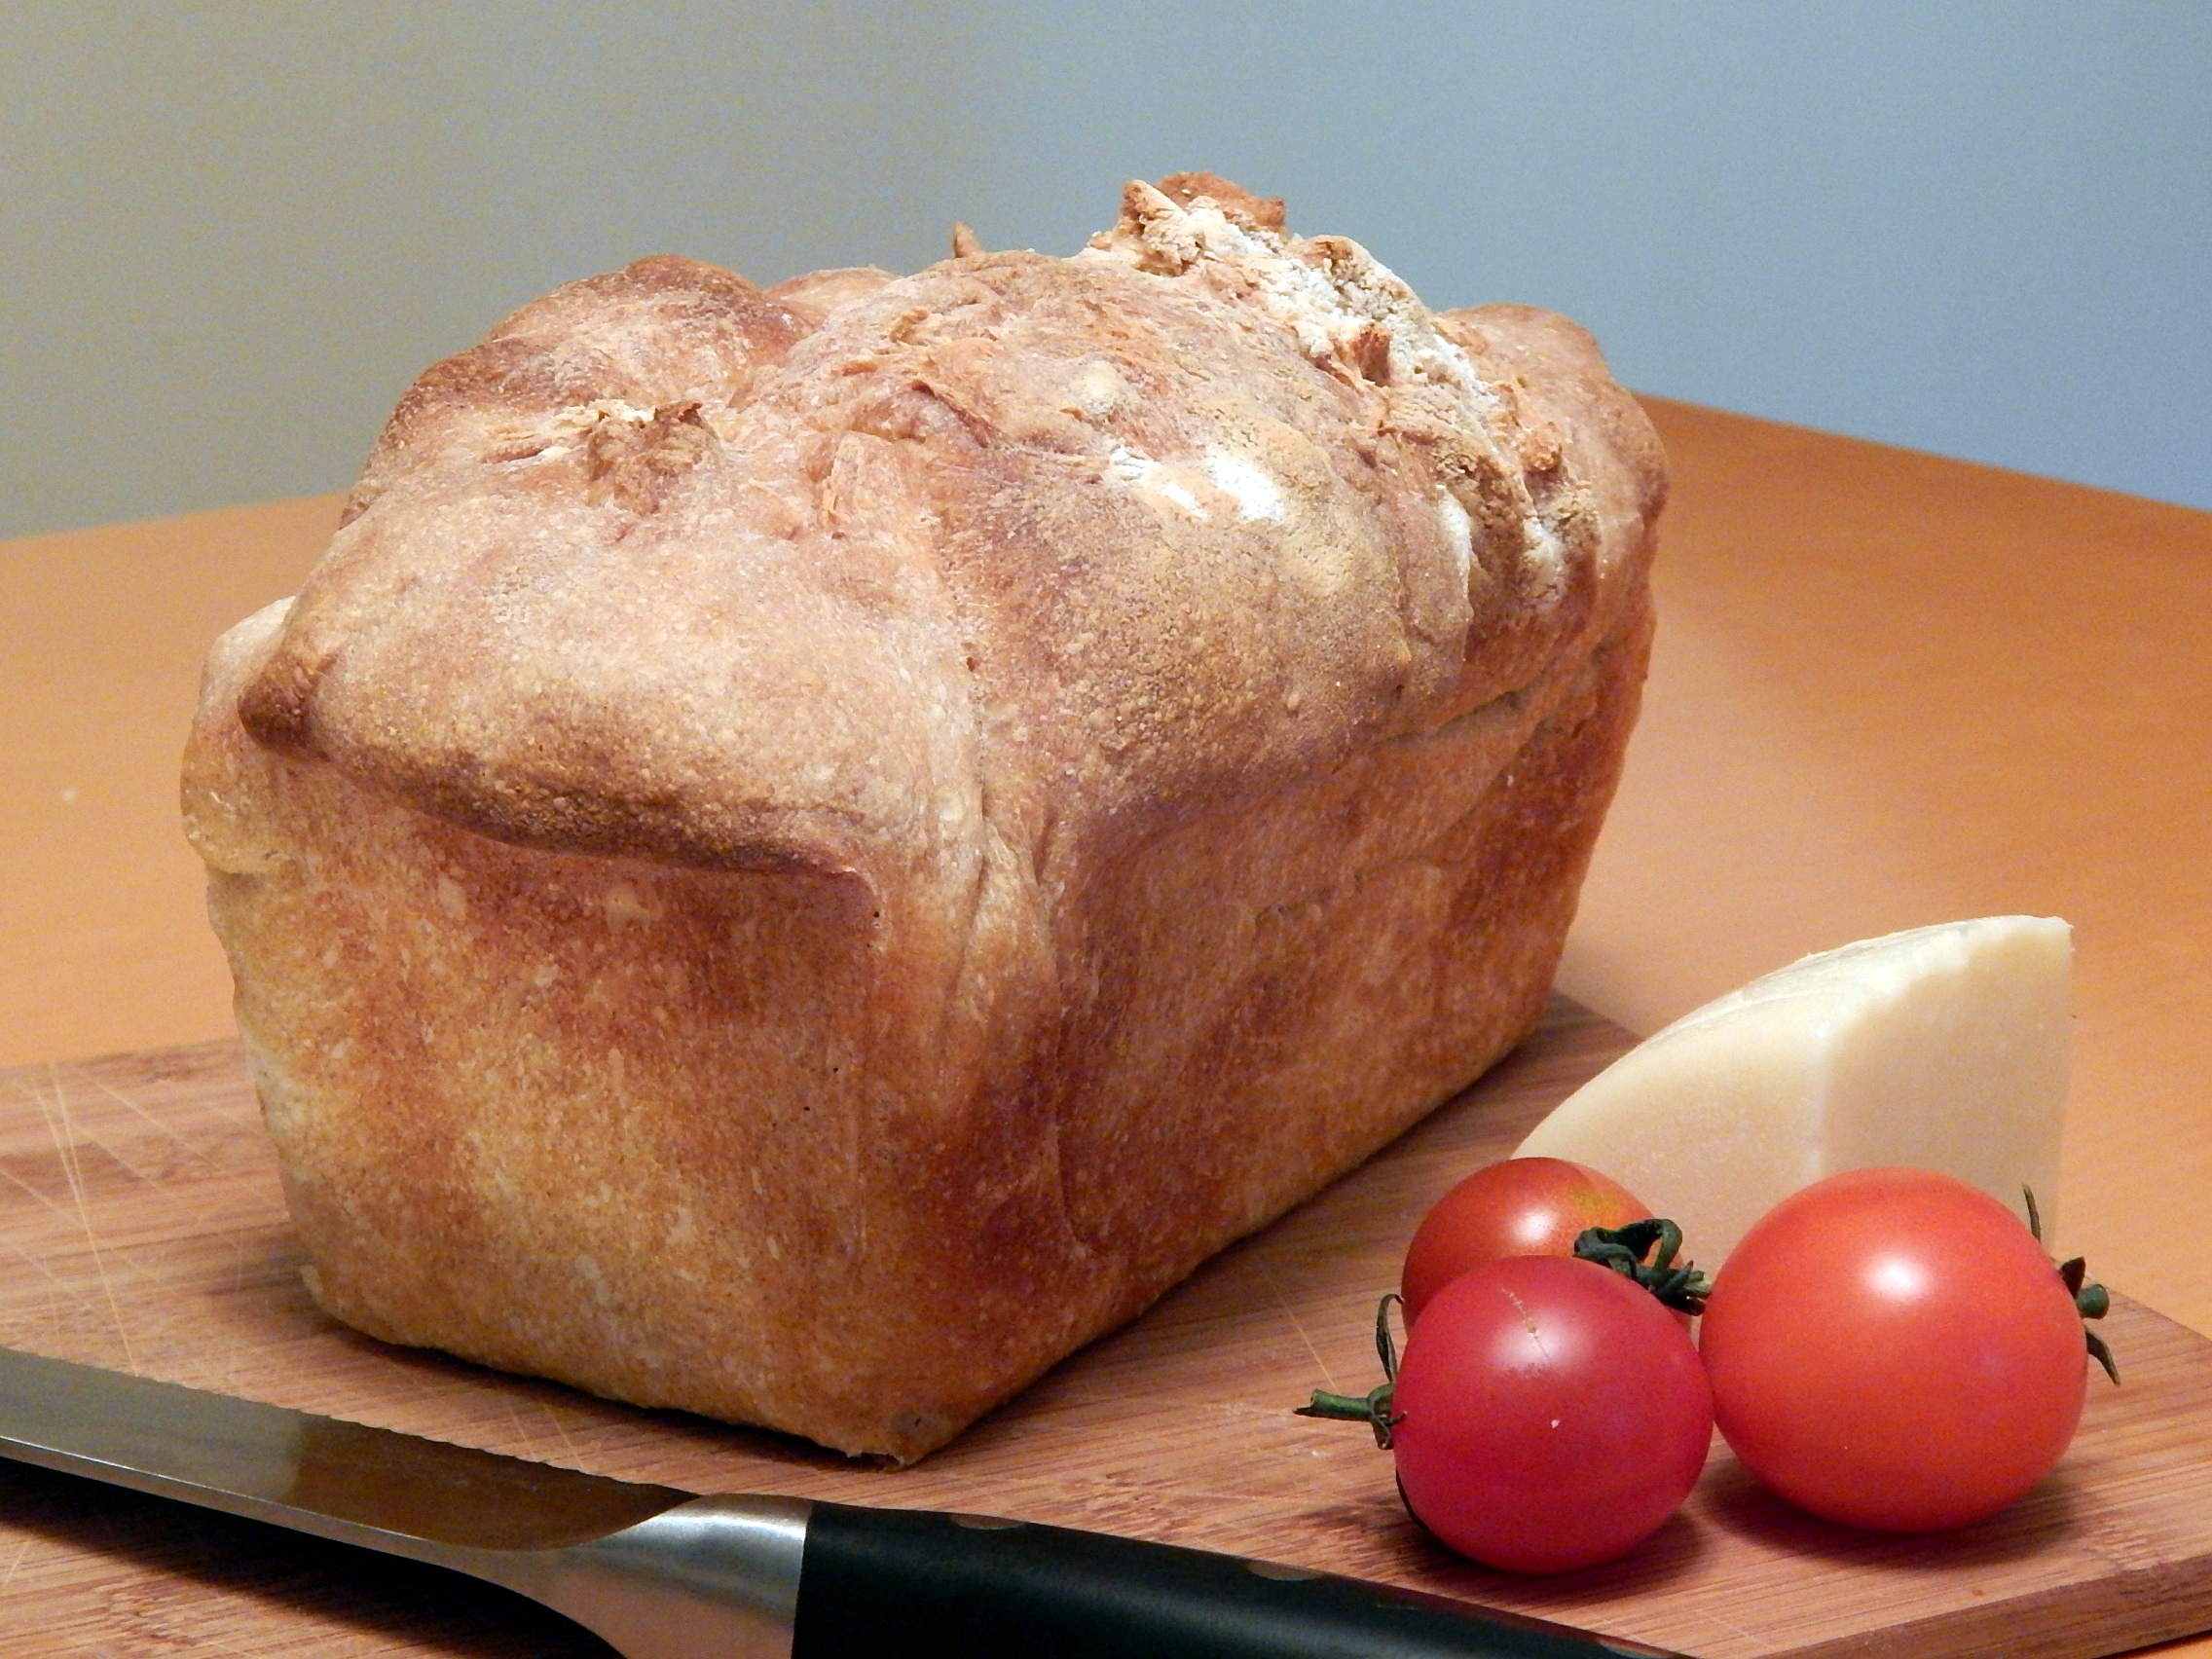 Loaf of white country-style French bread.